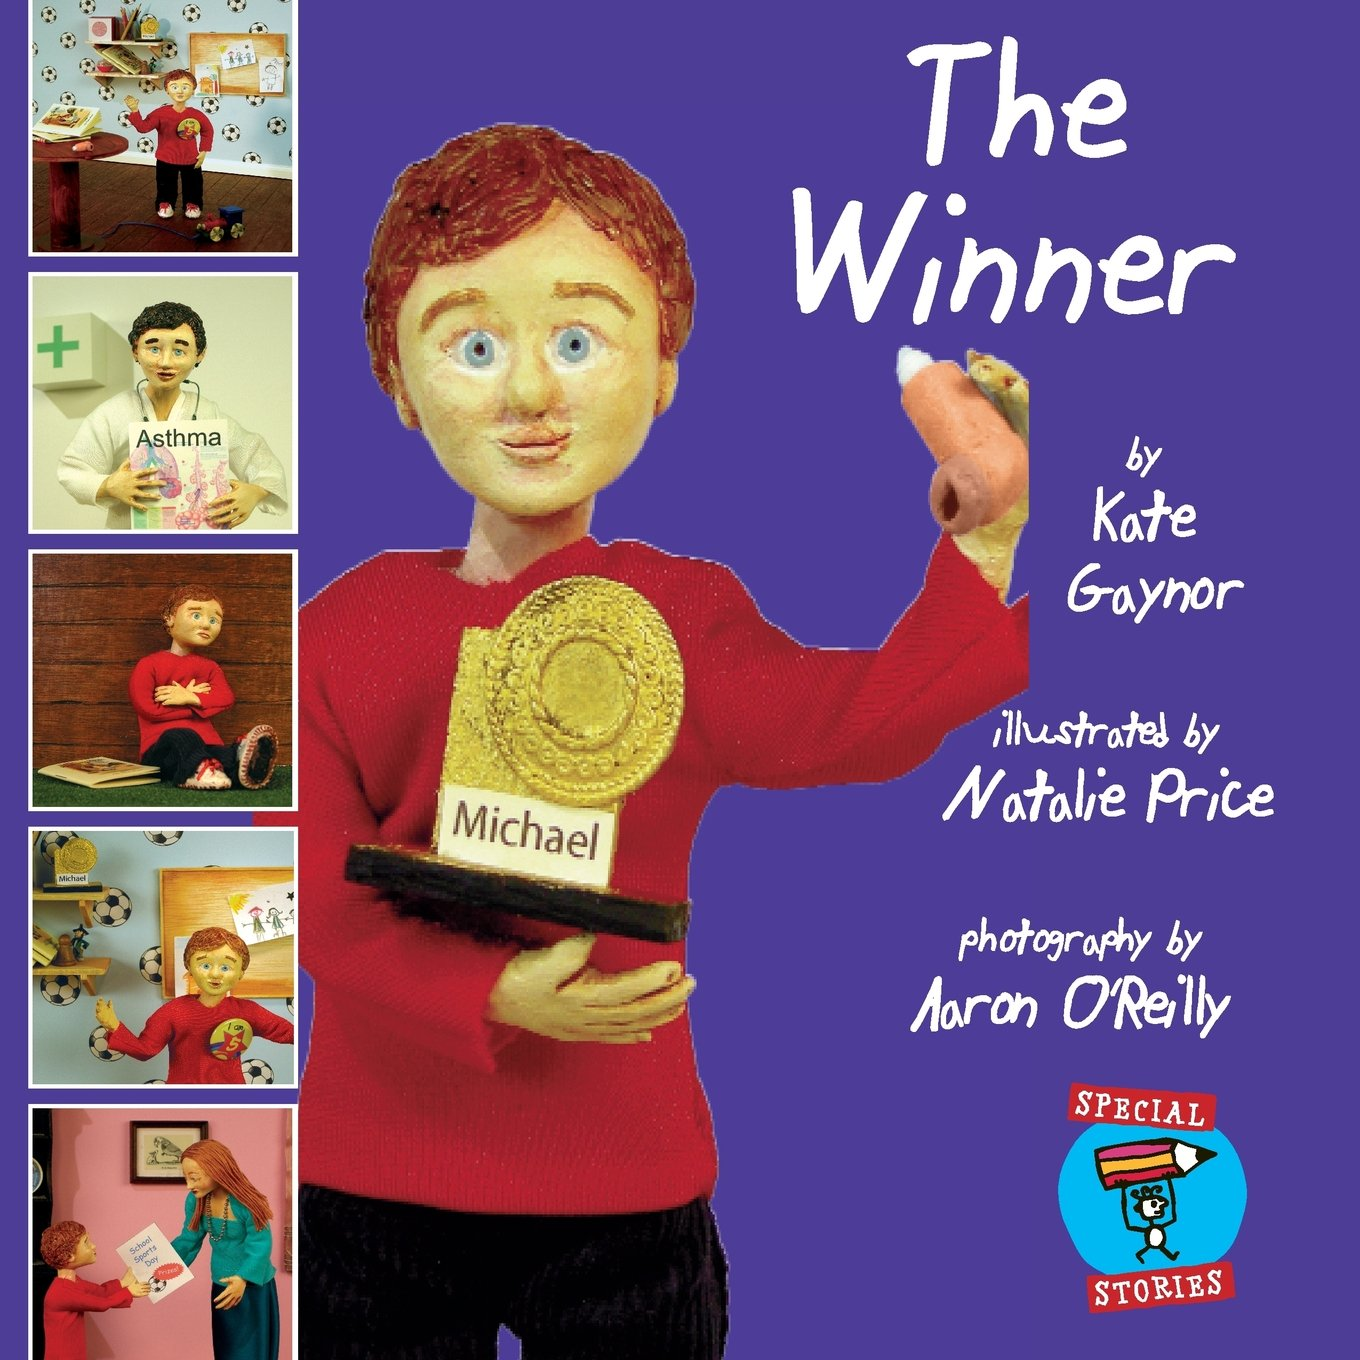 The Winner - This book has been designed to help explain Asthma and its effects to young children pdf